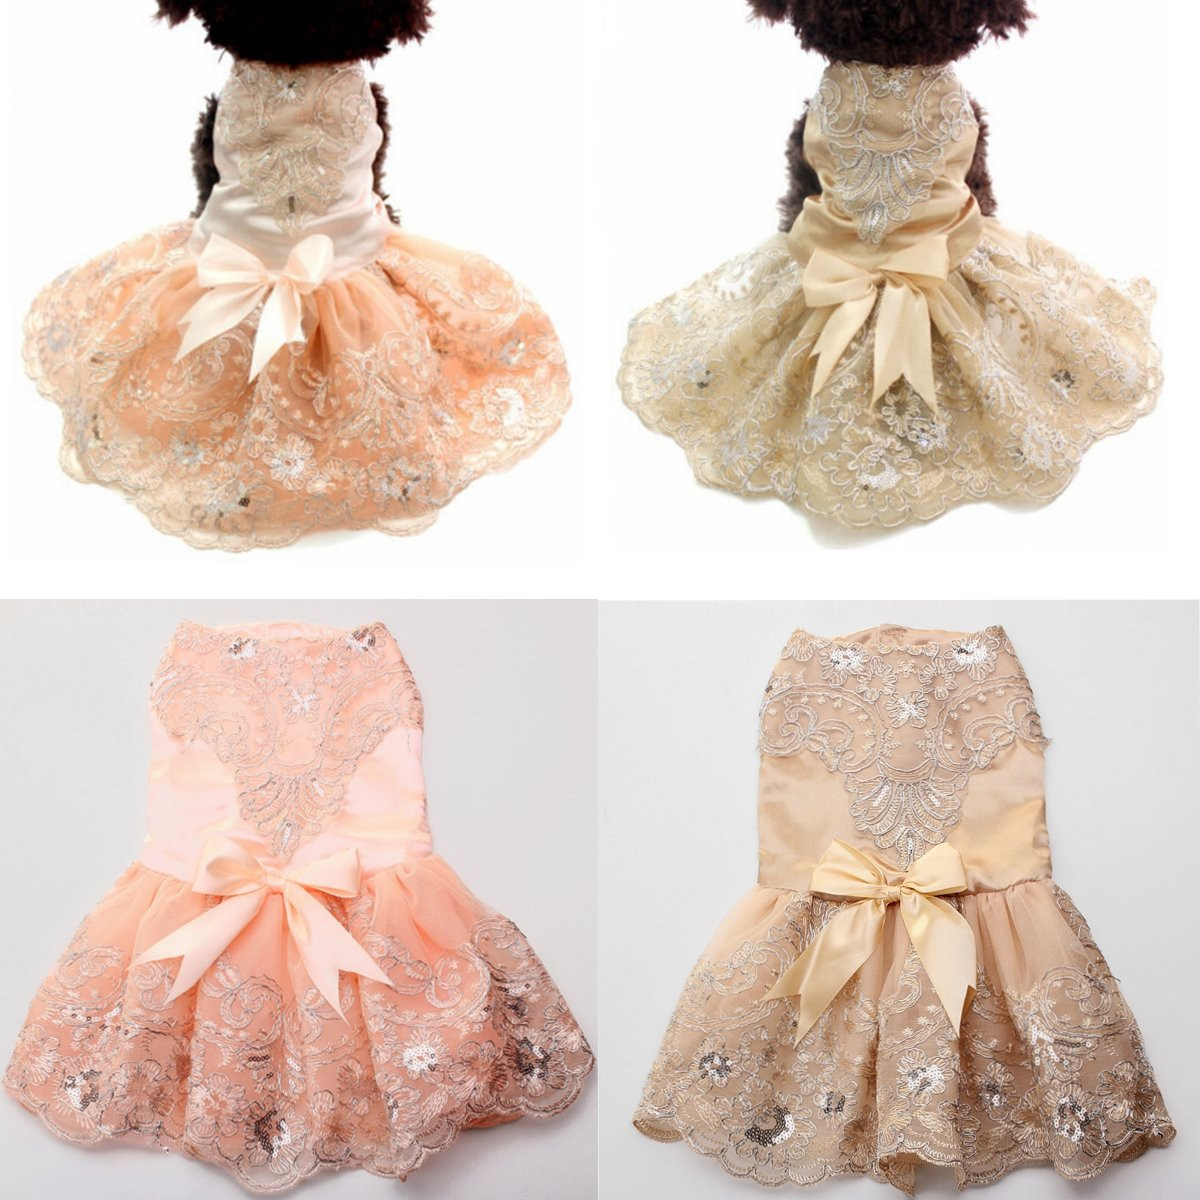 Pet dog Wedding Dress Tutu Cat Puppy Skirt Princess Clothes Flowers Lace design Valentine's Day Decoration Gift